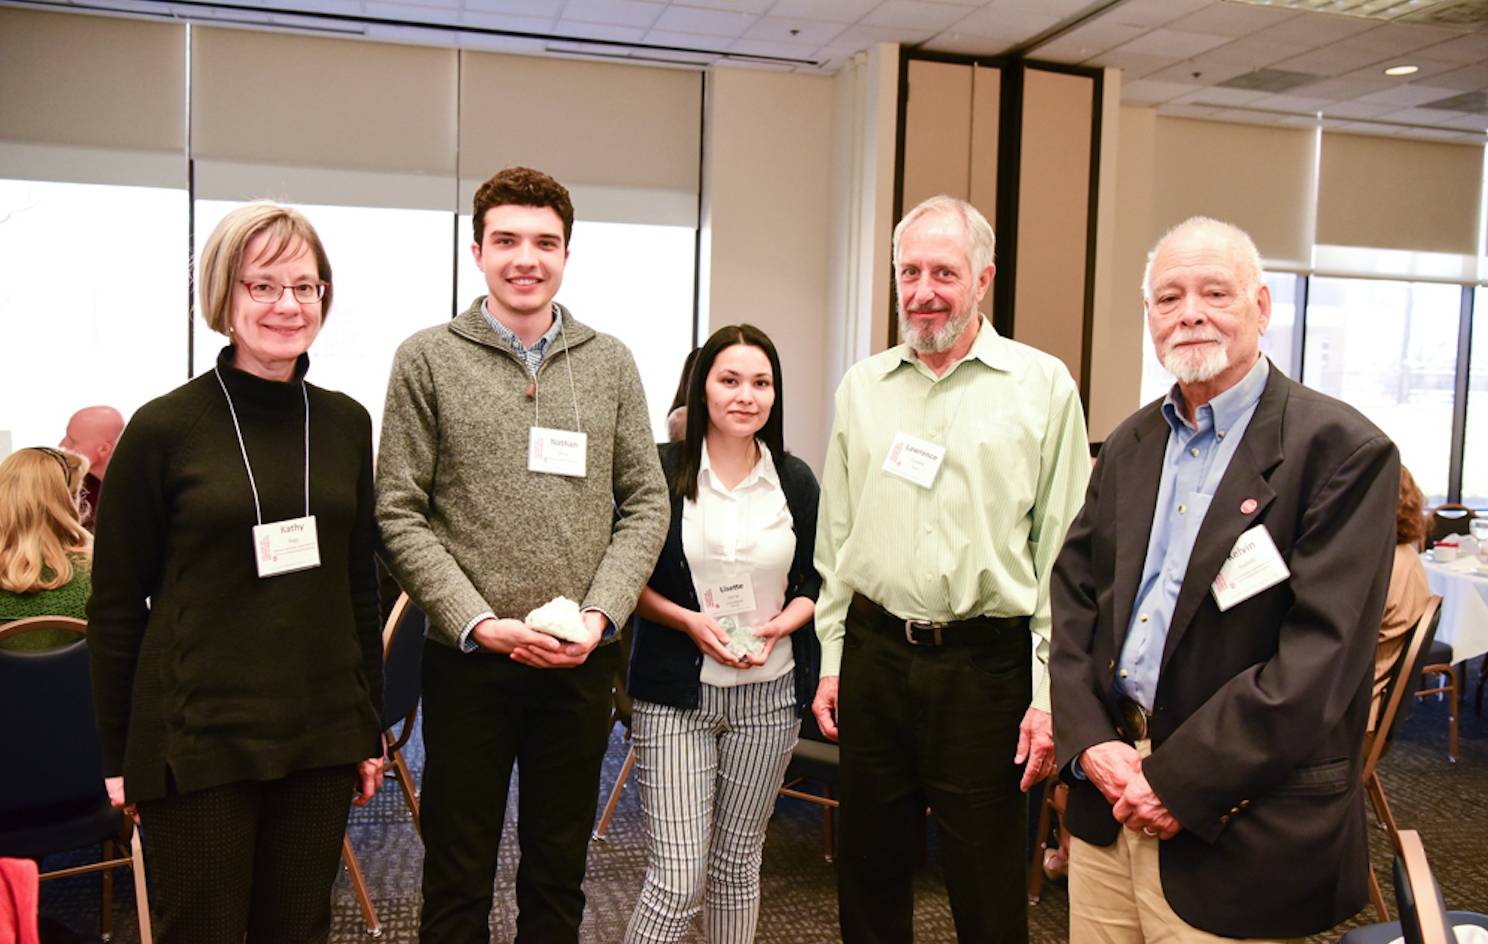 Undergrad scholarship recipients with Prof. Nagy, Larry Lunardi, and Emeritus Prof. Rodolfo